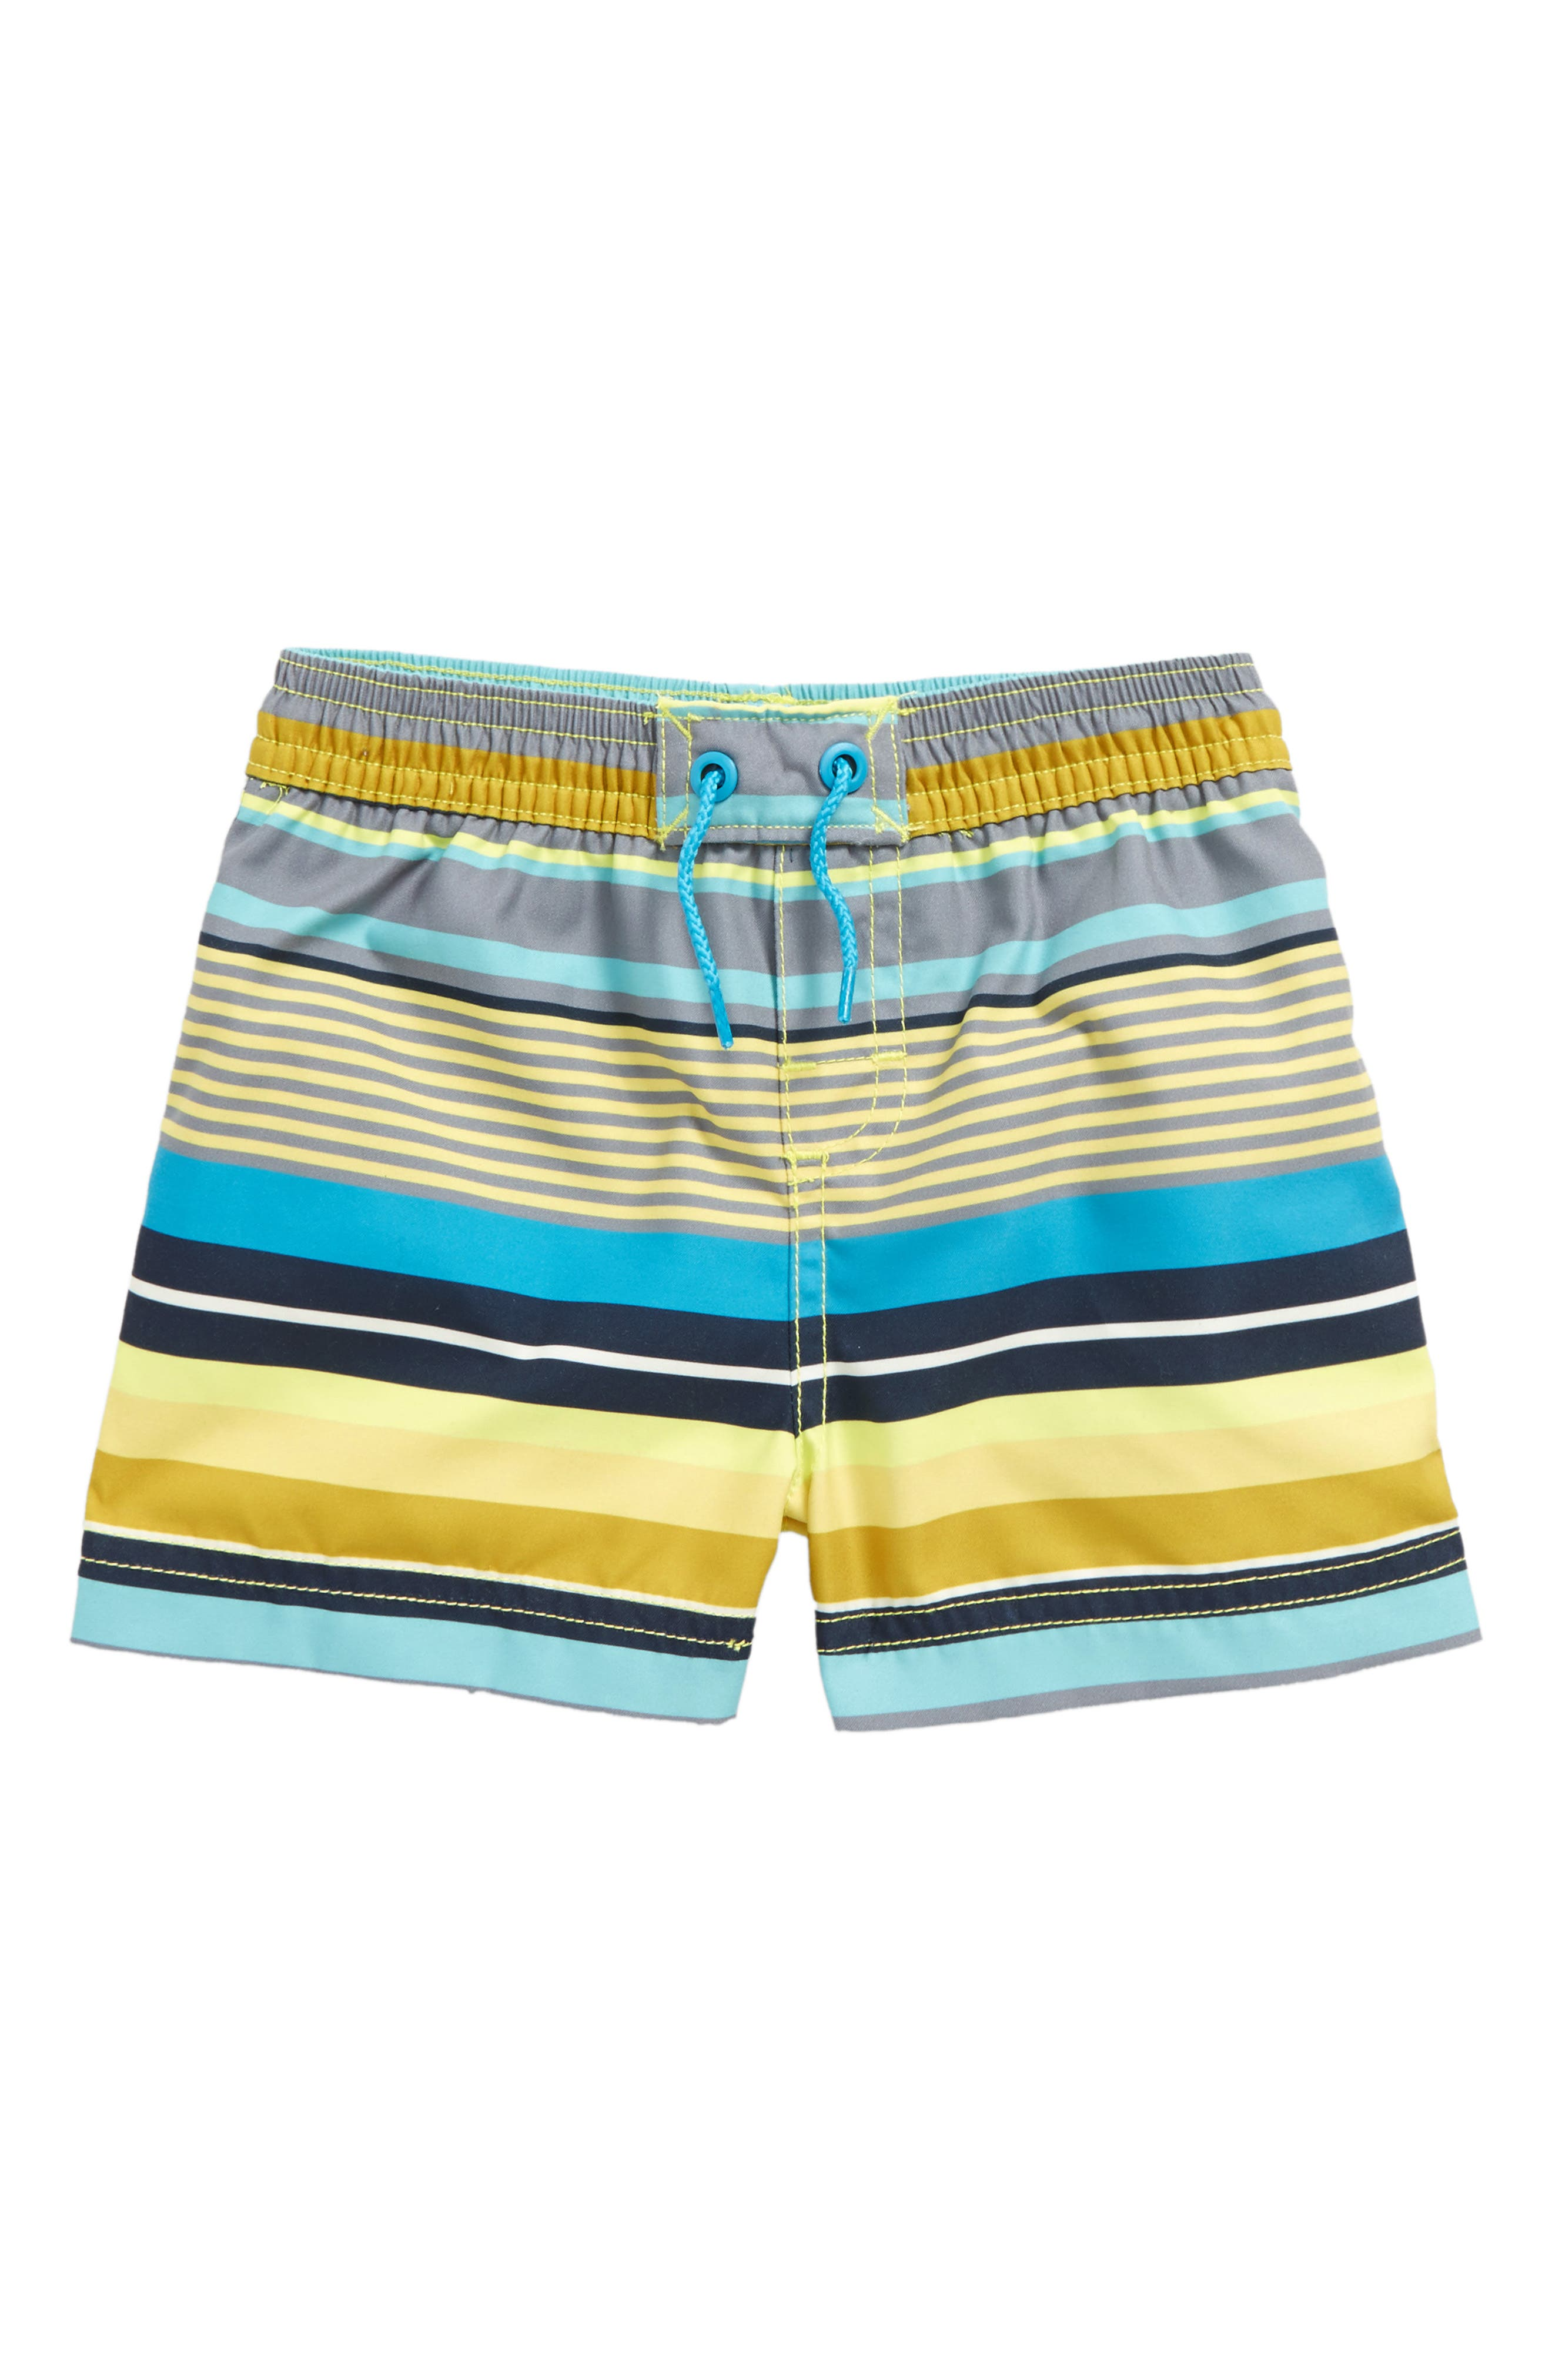 Alternate Image 1 Selected - Tea Collection Dawn Patrol Swim Trunks (Baby Boys)